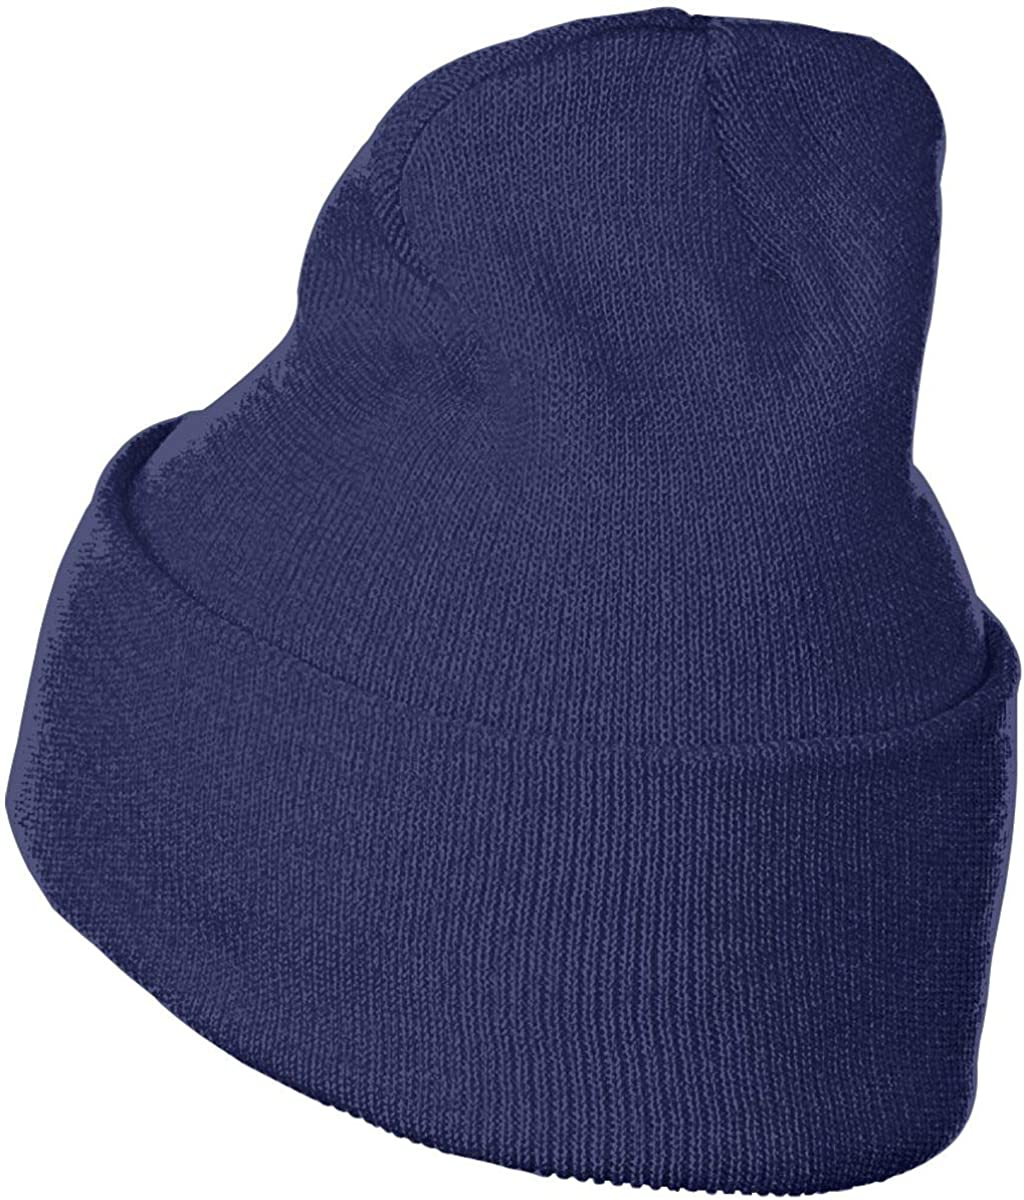 Adults Pickle Elastic Knitted Beanie Cap Winter Warm Skull Hats